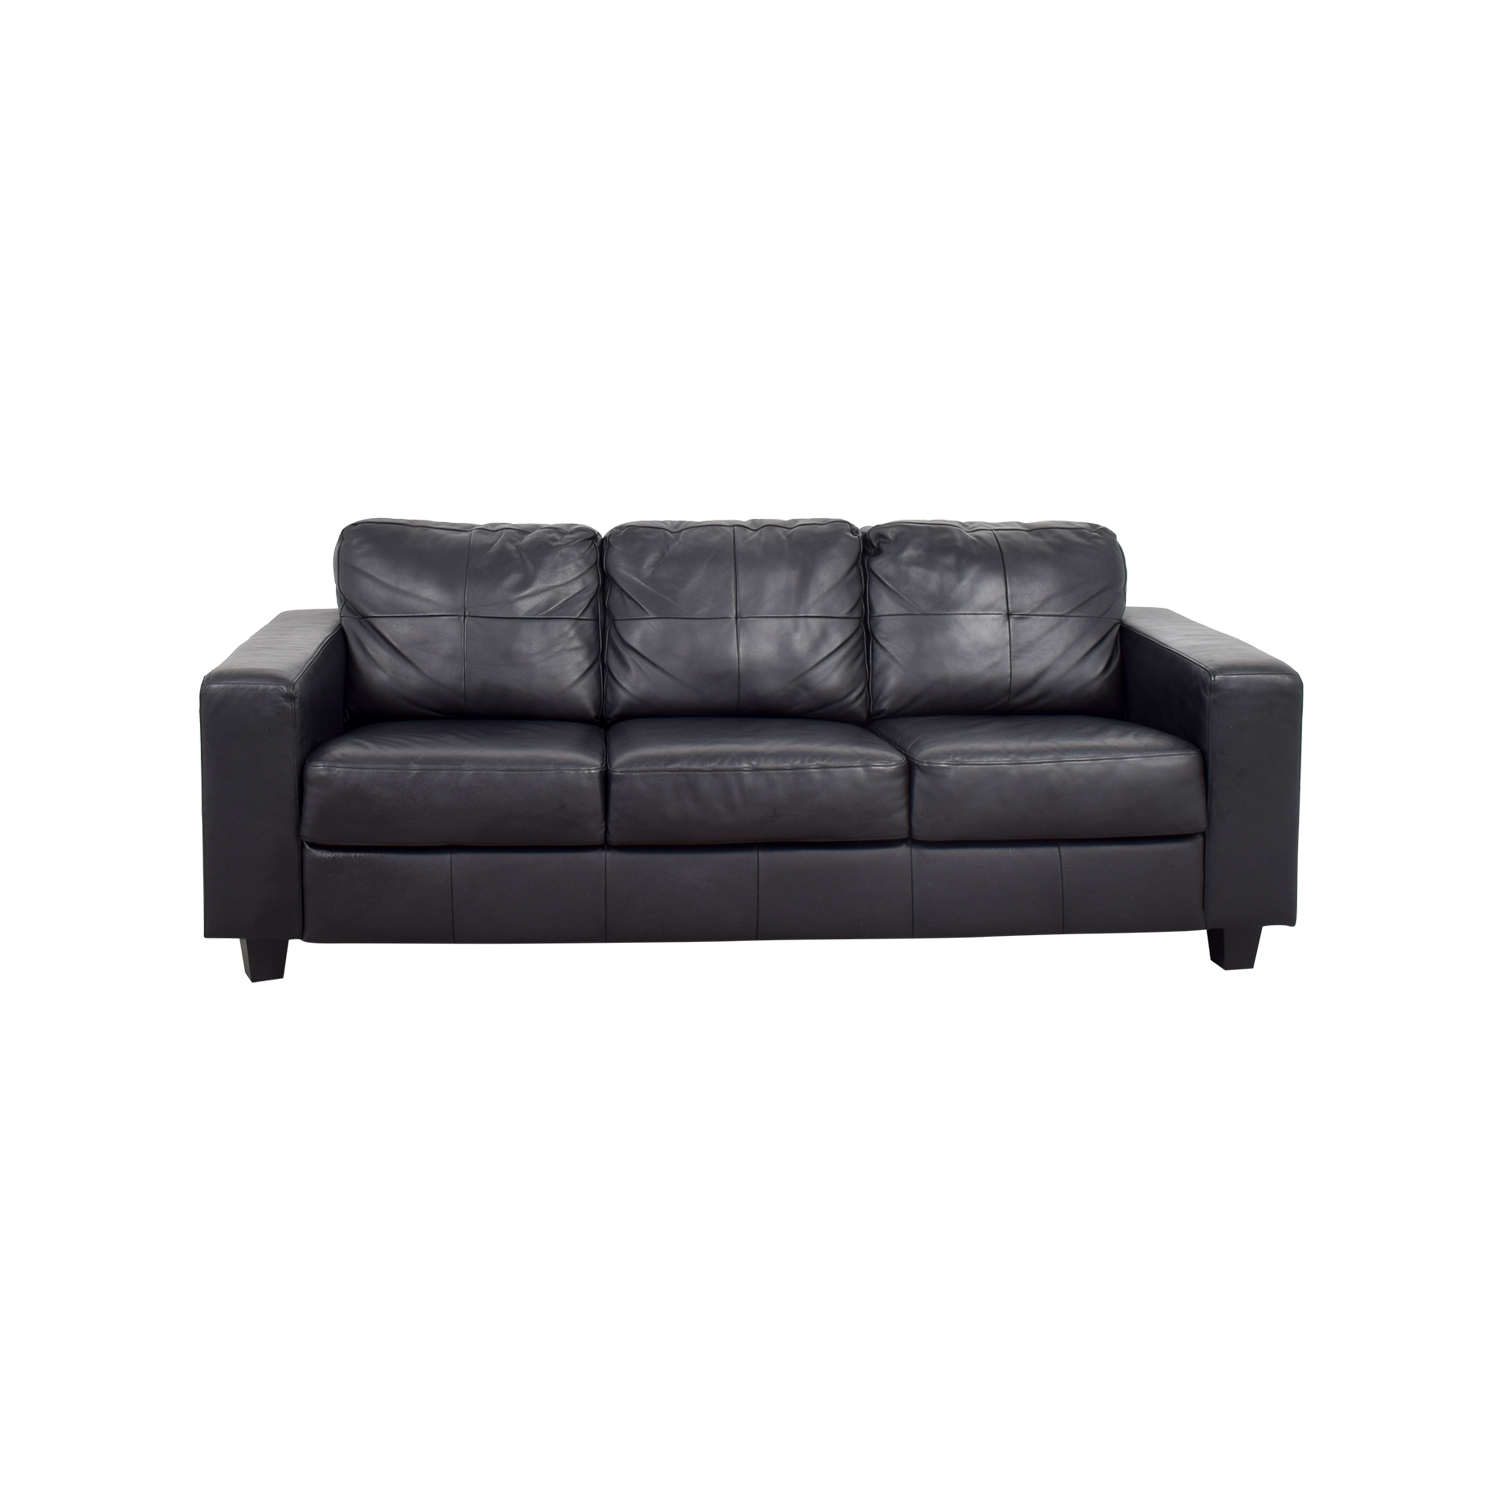 black leather sofas on gumtree simmons karina sofa bed reviews ikea 44 off skogaby ...